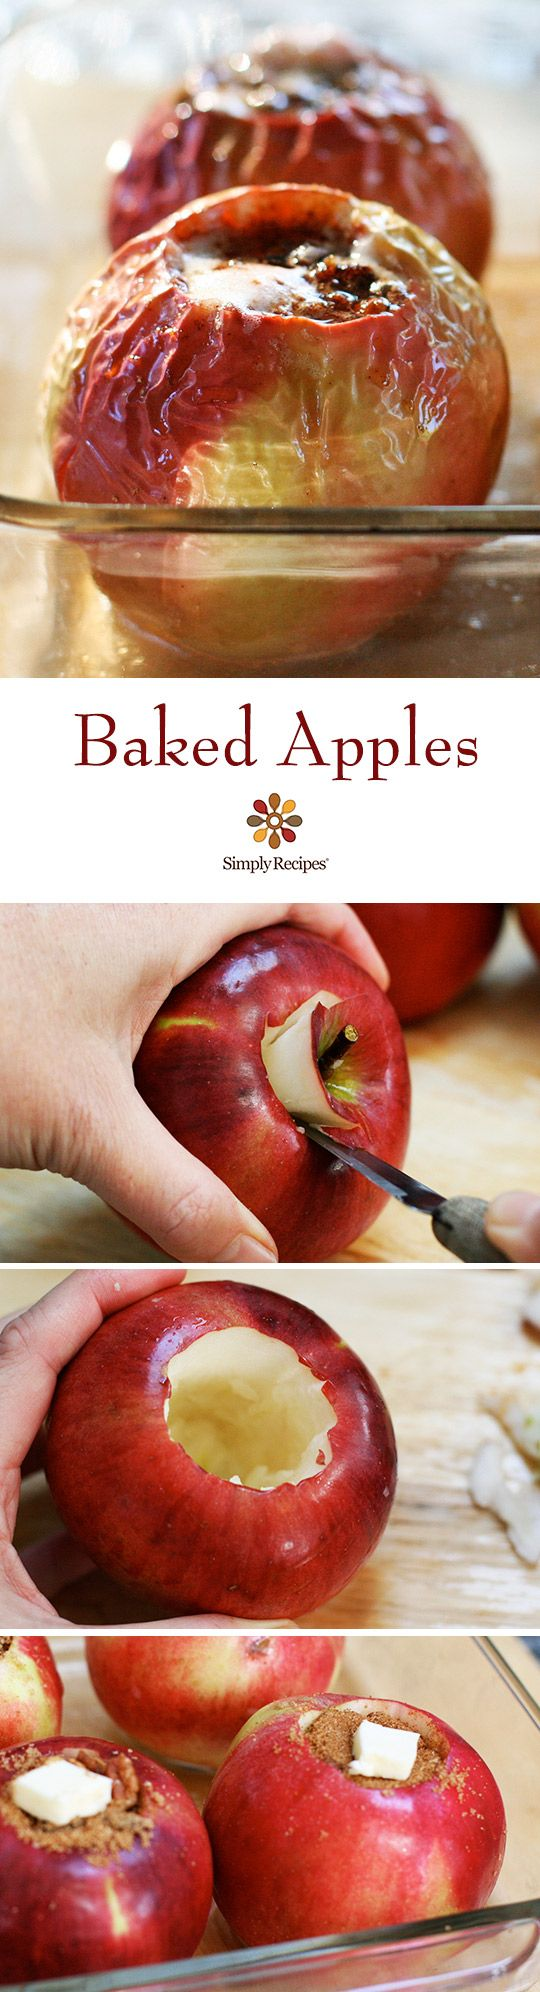 Baked Apples: